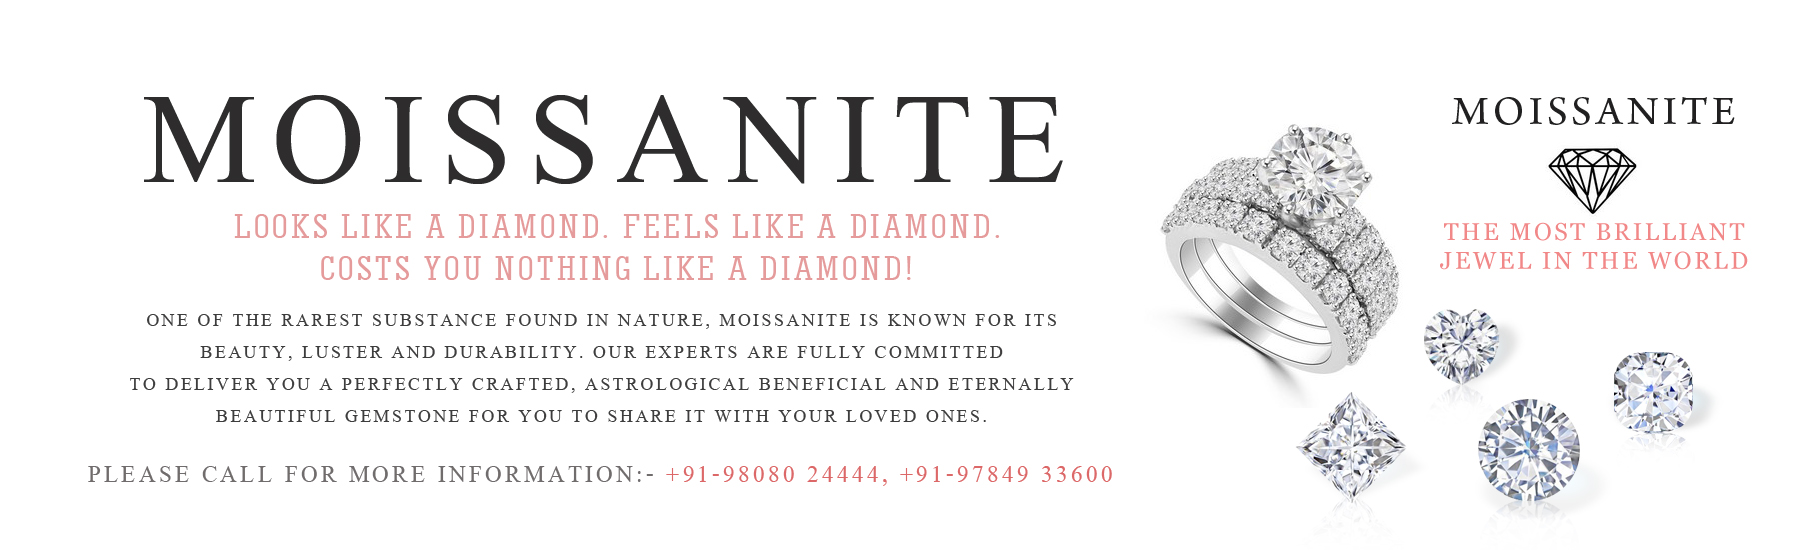 Buy Moissanite Gemstone Online in India